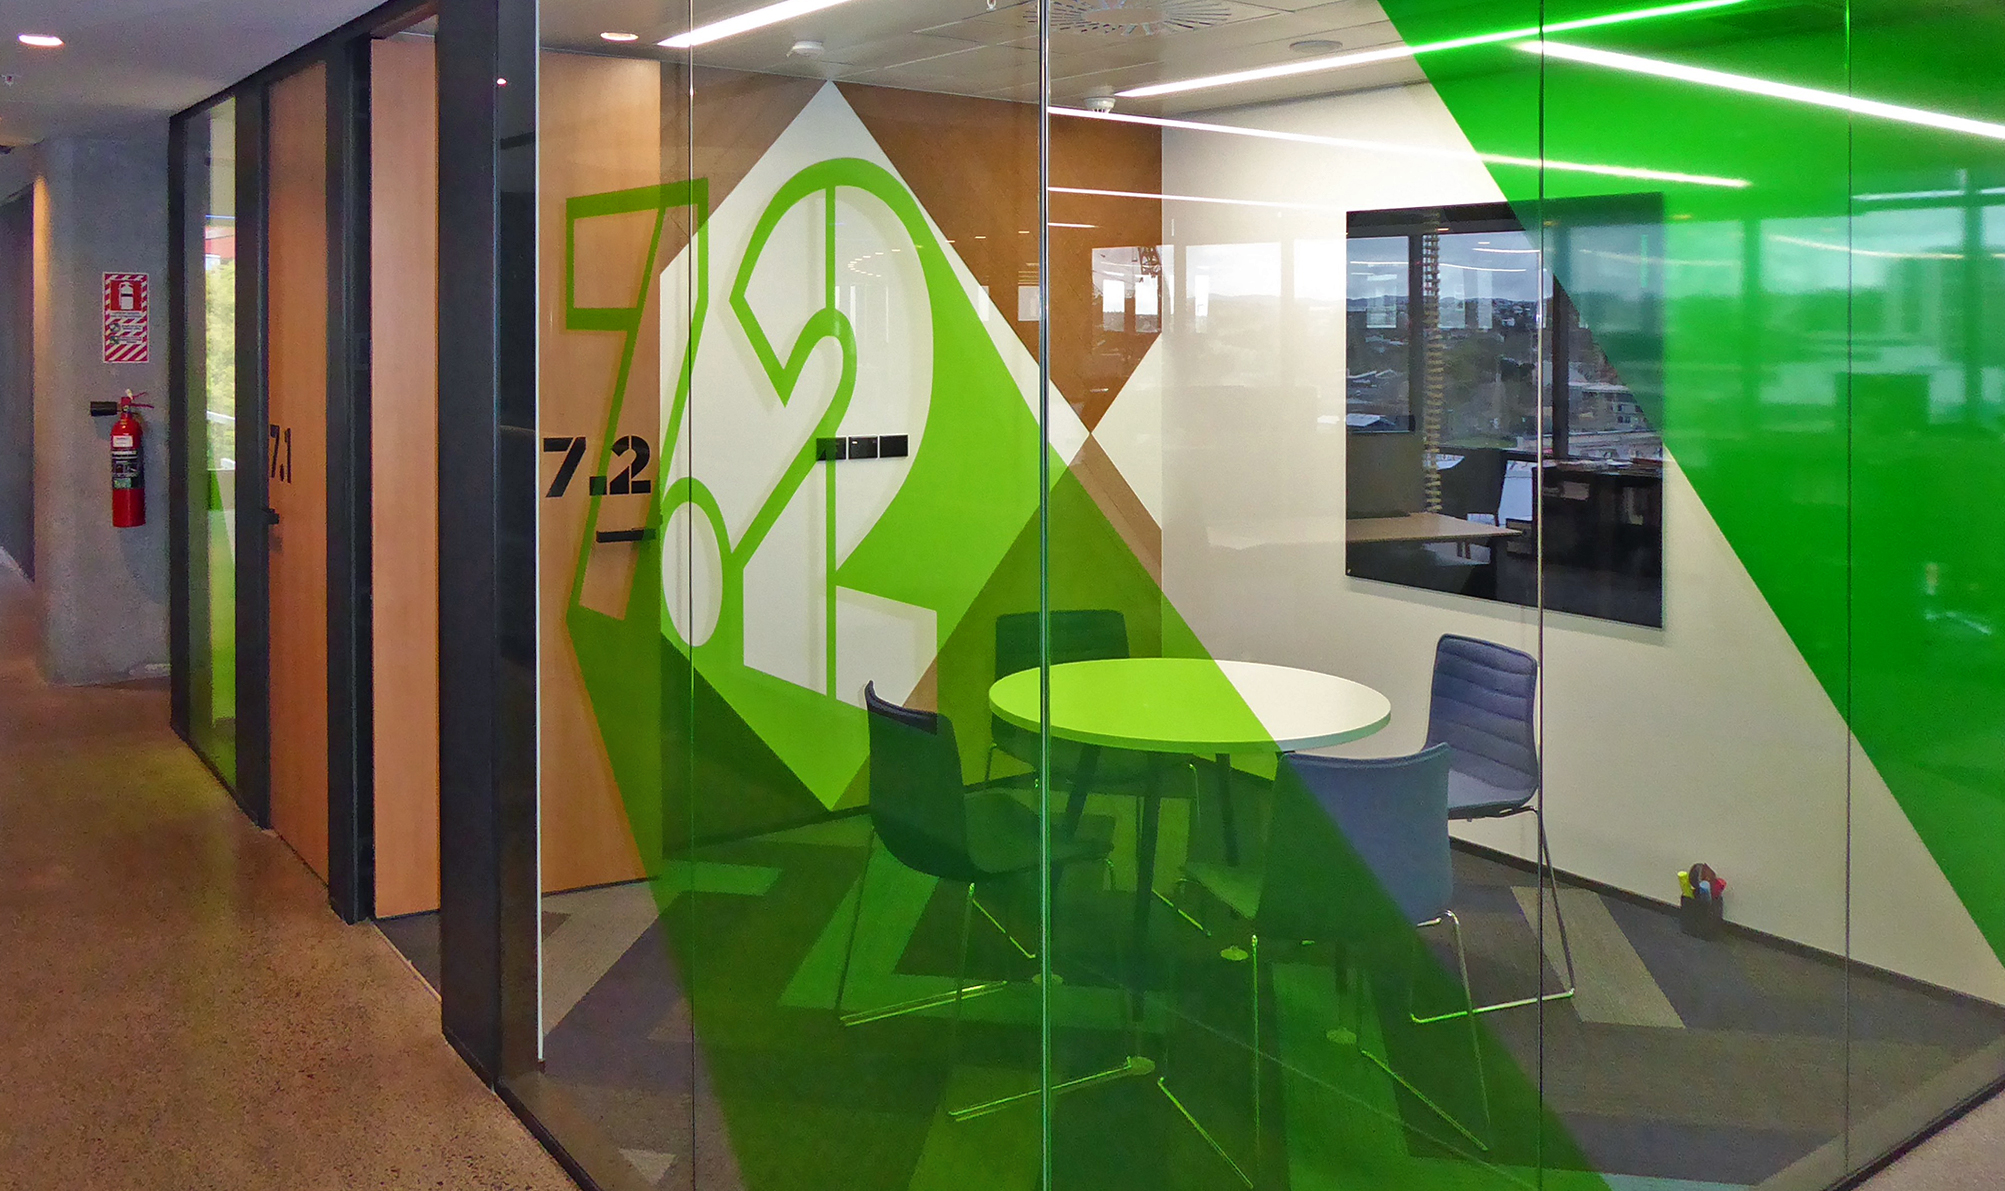 TVNZ Meeting Room Signage graphic